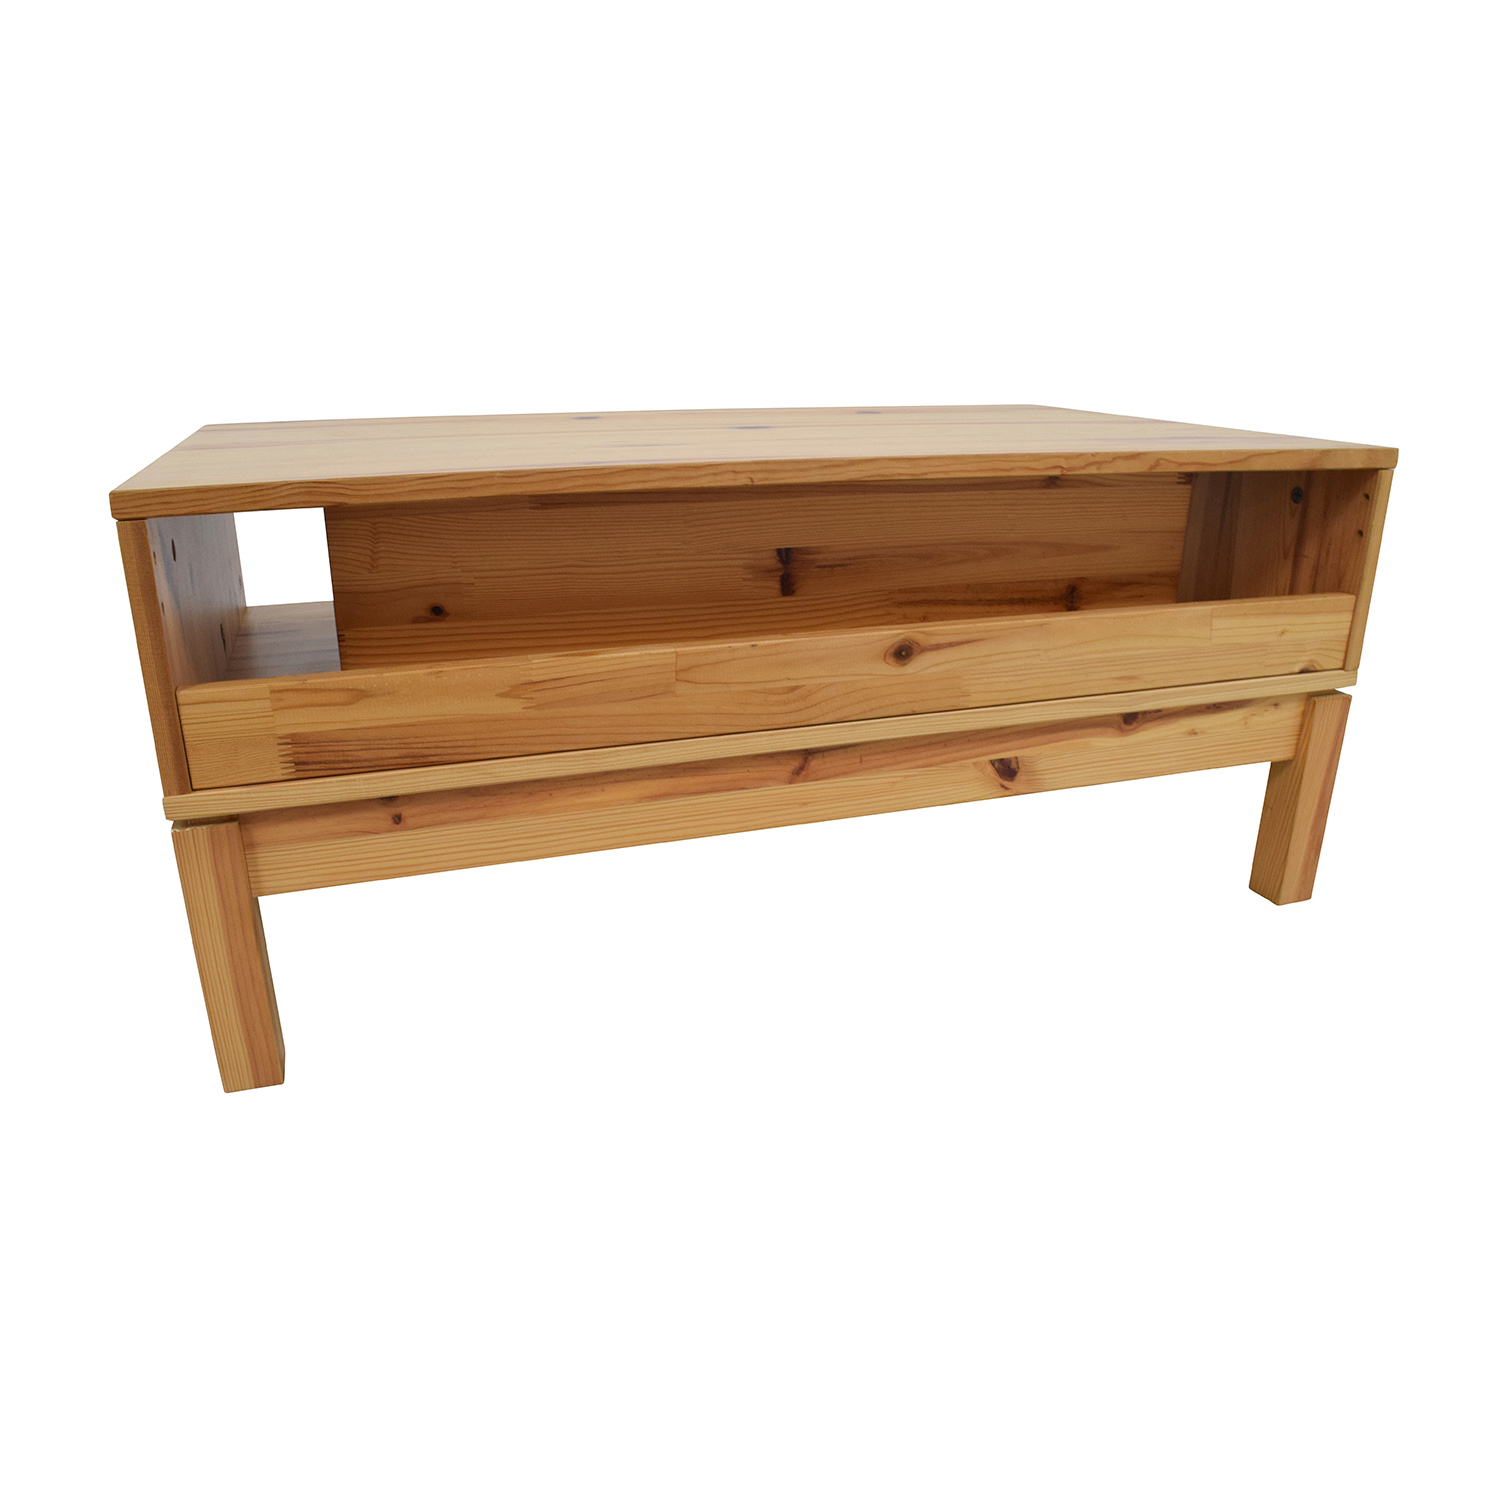 71 off ikea ikea husar pine wood tv table storage - Ikea table tv ...